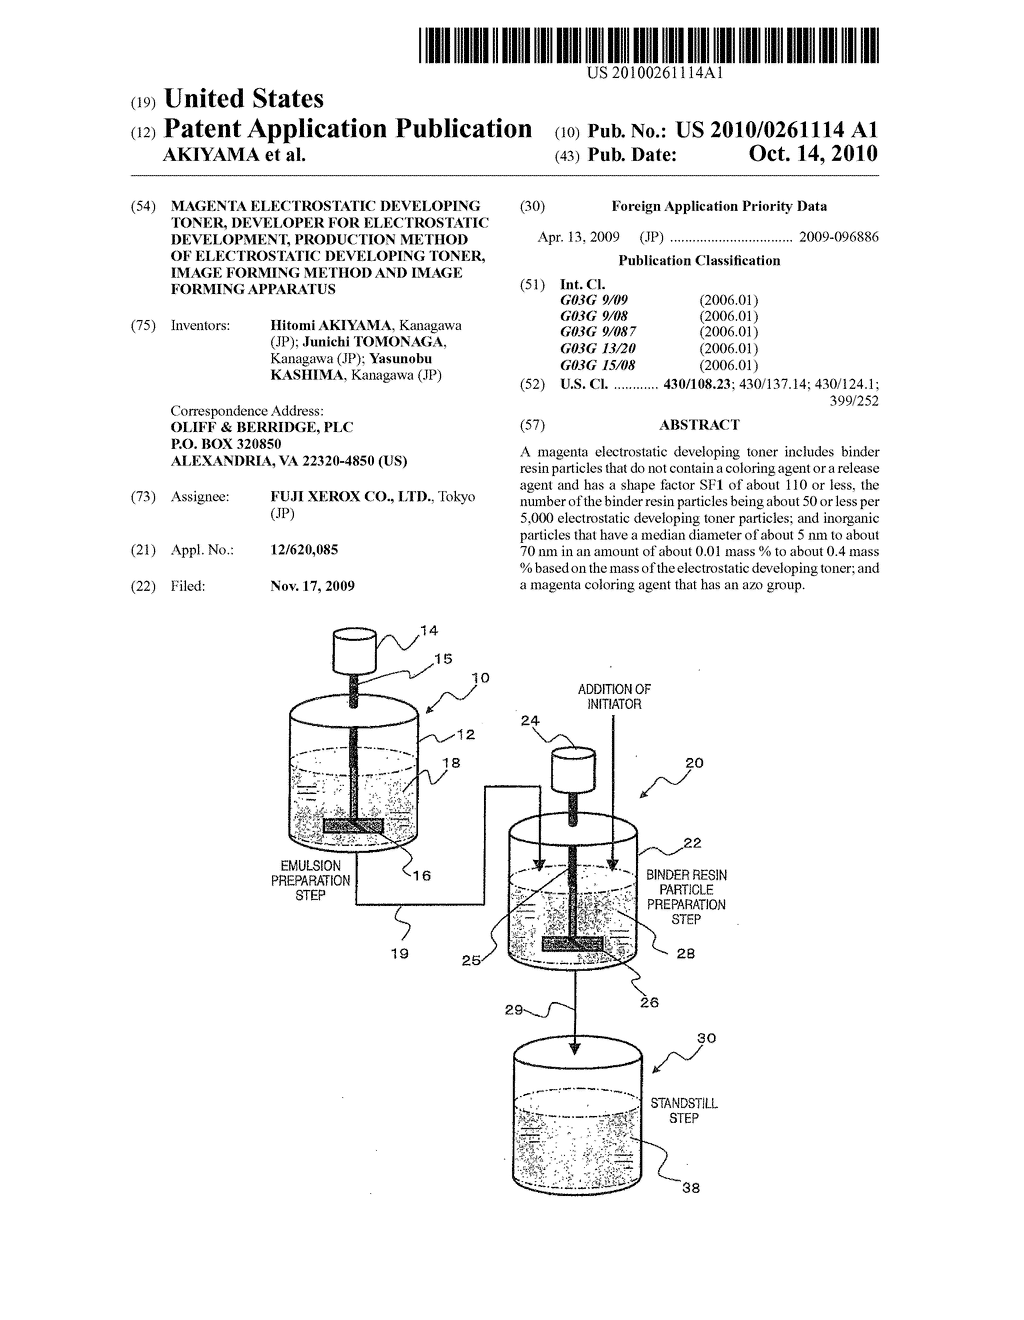 MAGENTA ELECTROSTATIC DEVELOPING TONER, DEVELOPER FOR ELECTROSTATIC DEVELOPMENT, PRODUCTION METHOD OF ELECTROSTATIC DEVELOPING TONER, IMAGE FORMING METHOD AND IMAGE FORMING APPARATUS - diagram, schematic, and image 01